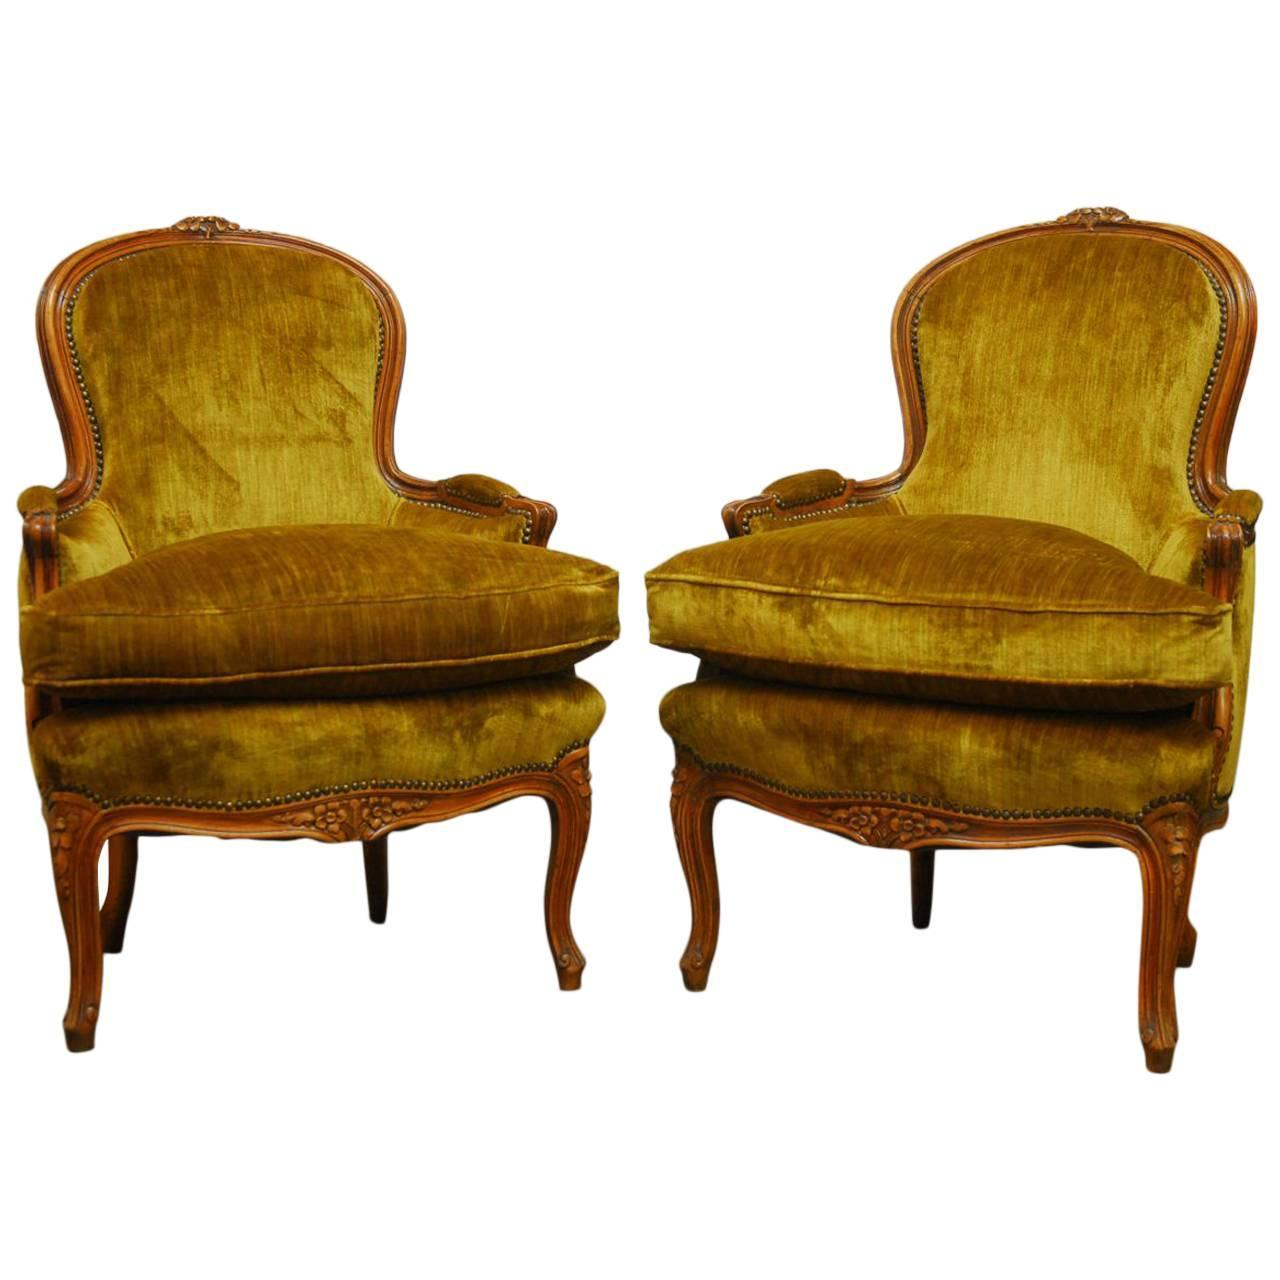 Bergere chair french rococo - Pair Of Louis Xv Hand Carved Topaz Velvet Bergere Chairs